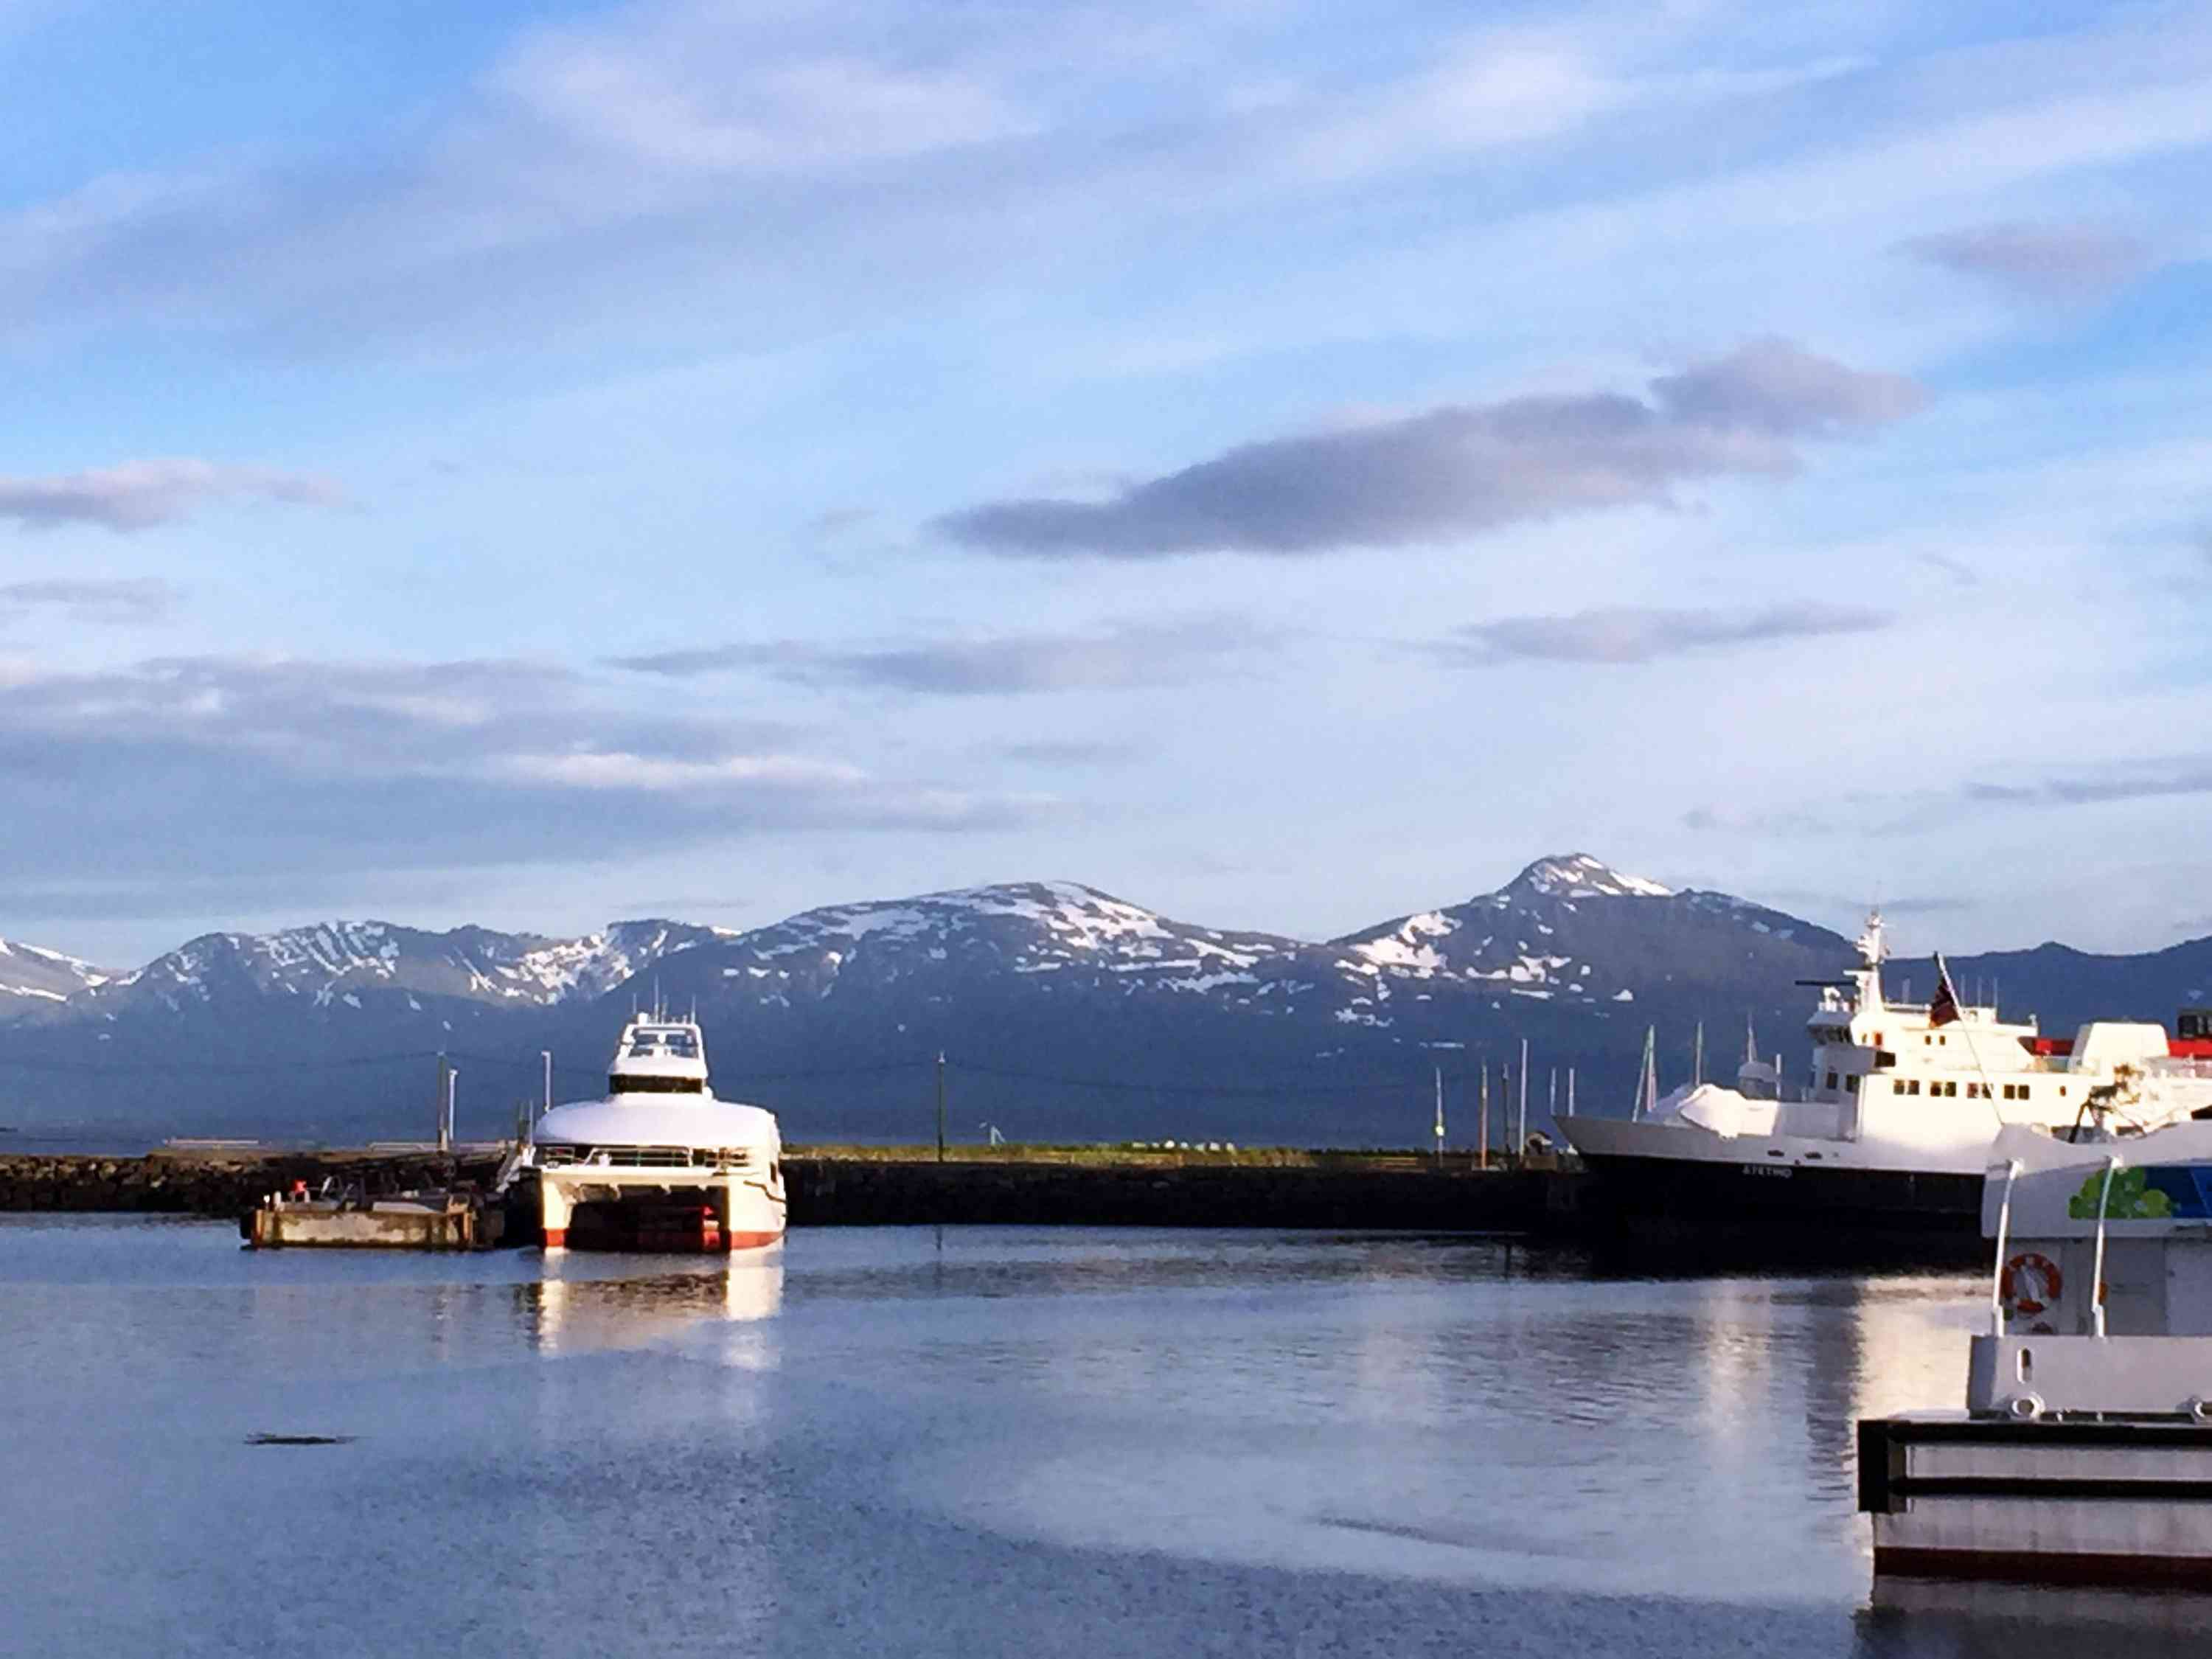 Harbor with boats and ice capped mountains in distance